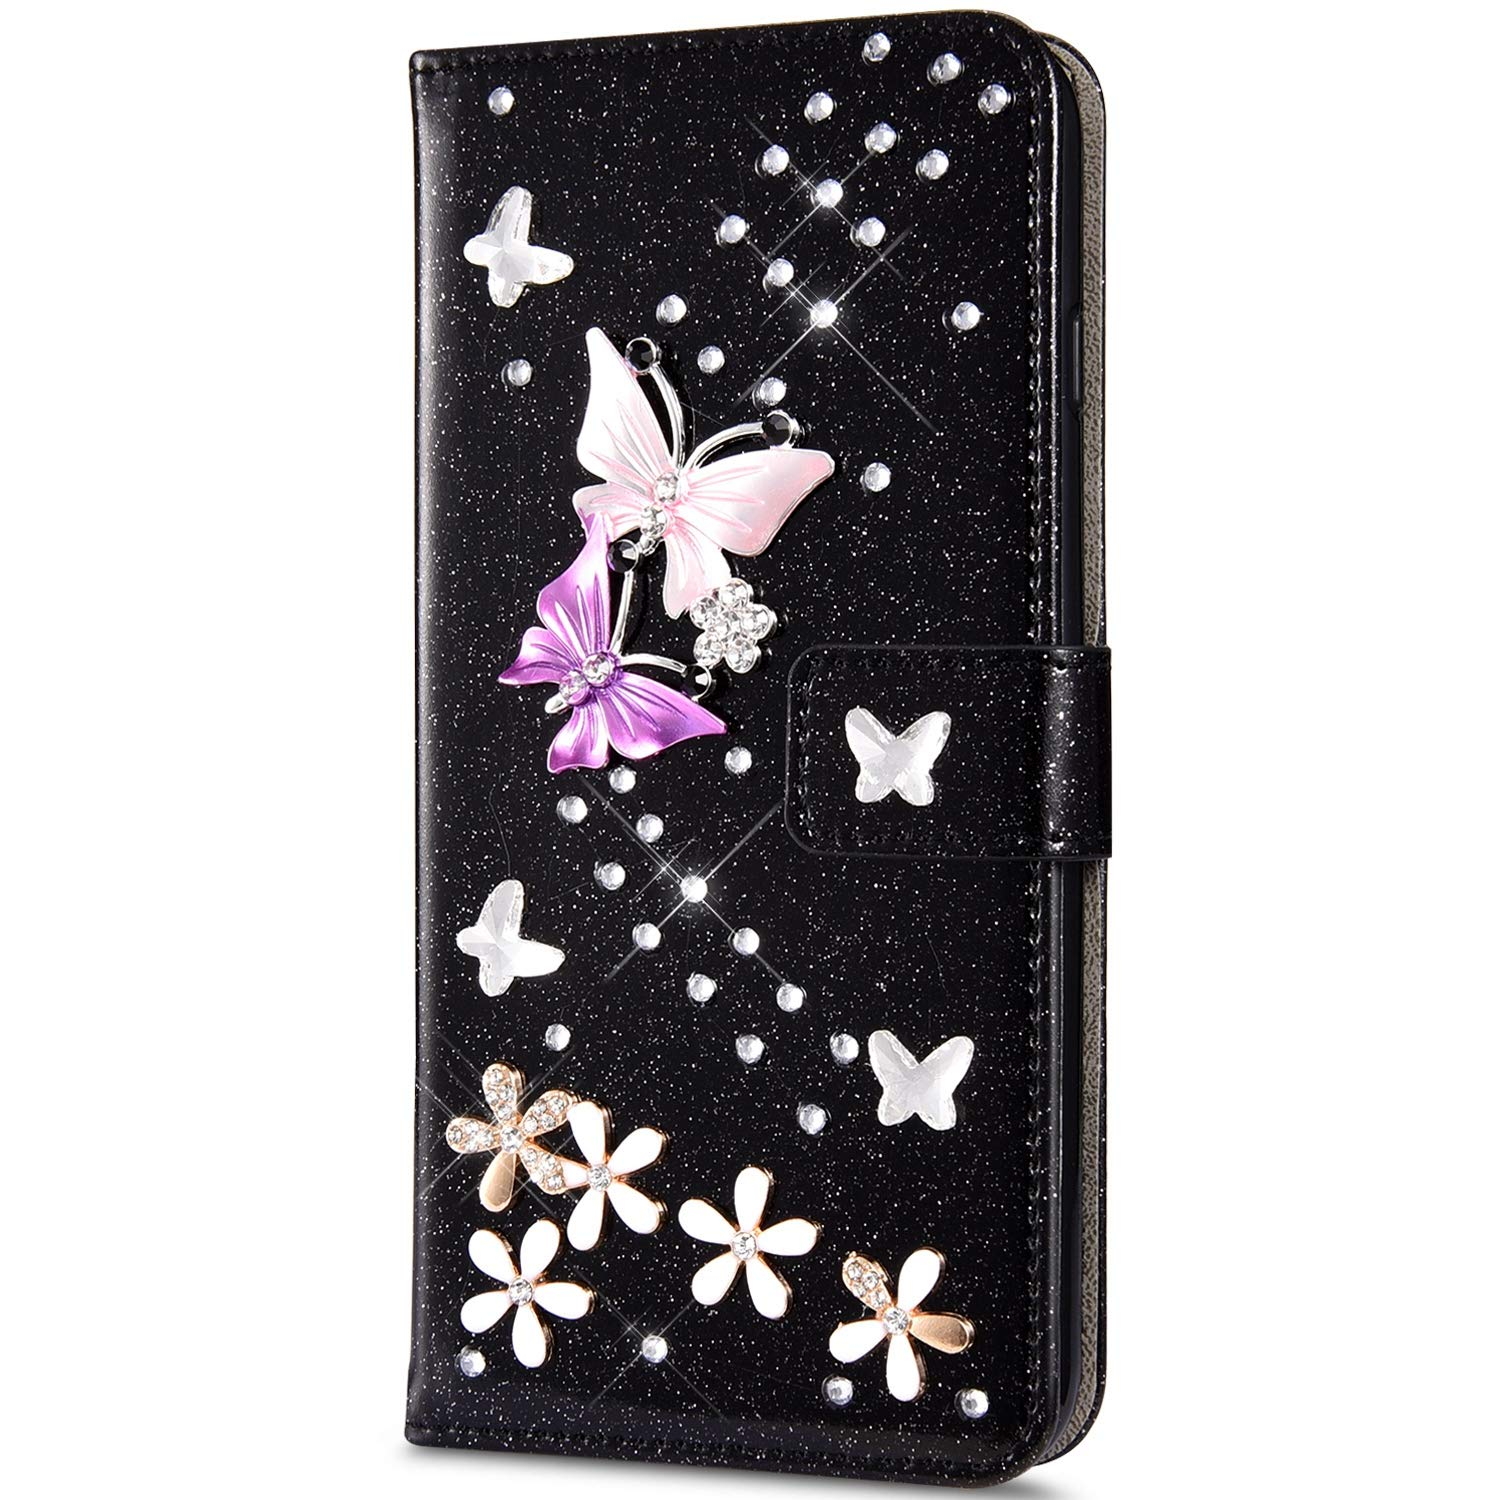 Case for iPhone 7 Plus/iPhone 8 Plus Flip Case Premium PU Leather Wallet Case 3D Handmade Glitter Bling Shiny Diamond Butterfly with Card Slots Kickstand for iPhone 7/8 Plus,Black by ikasus